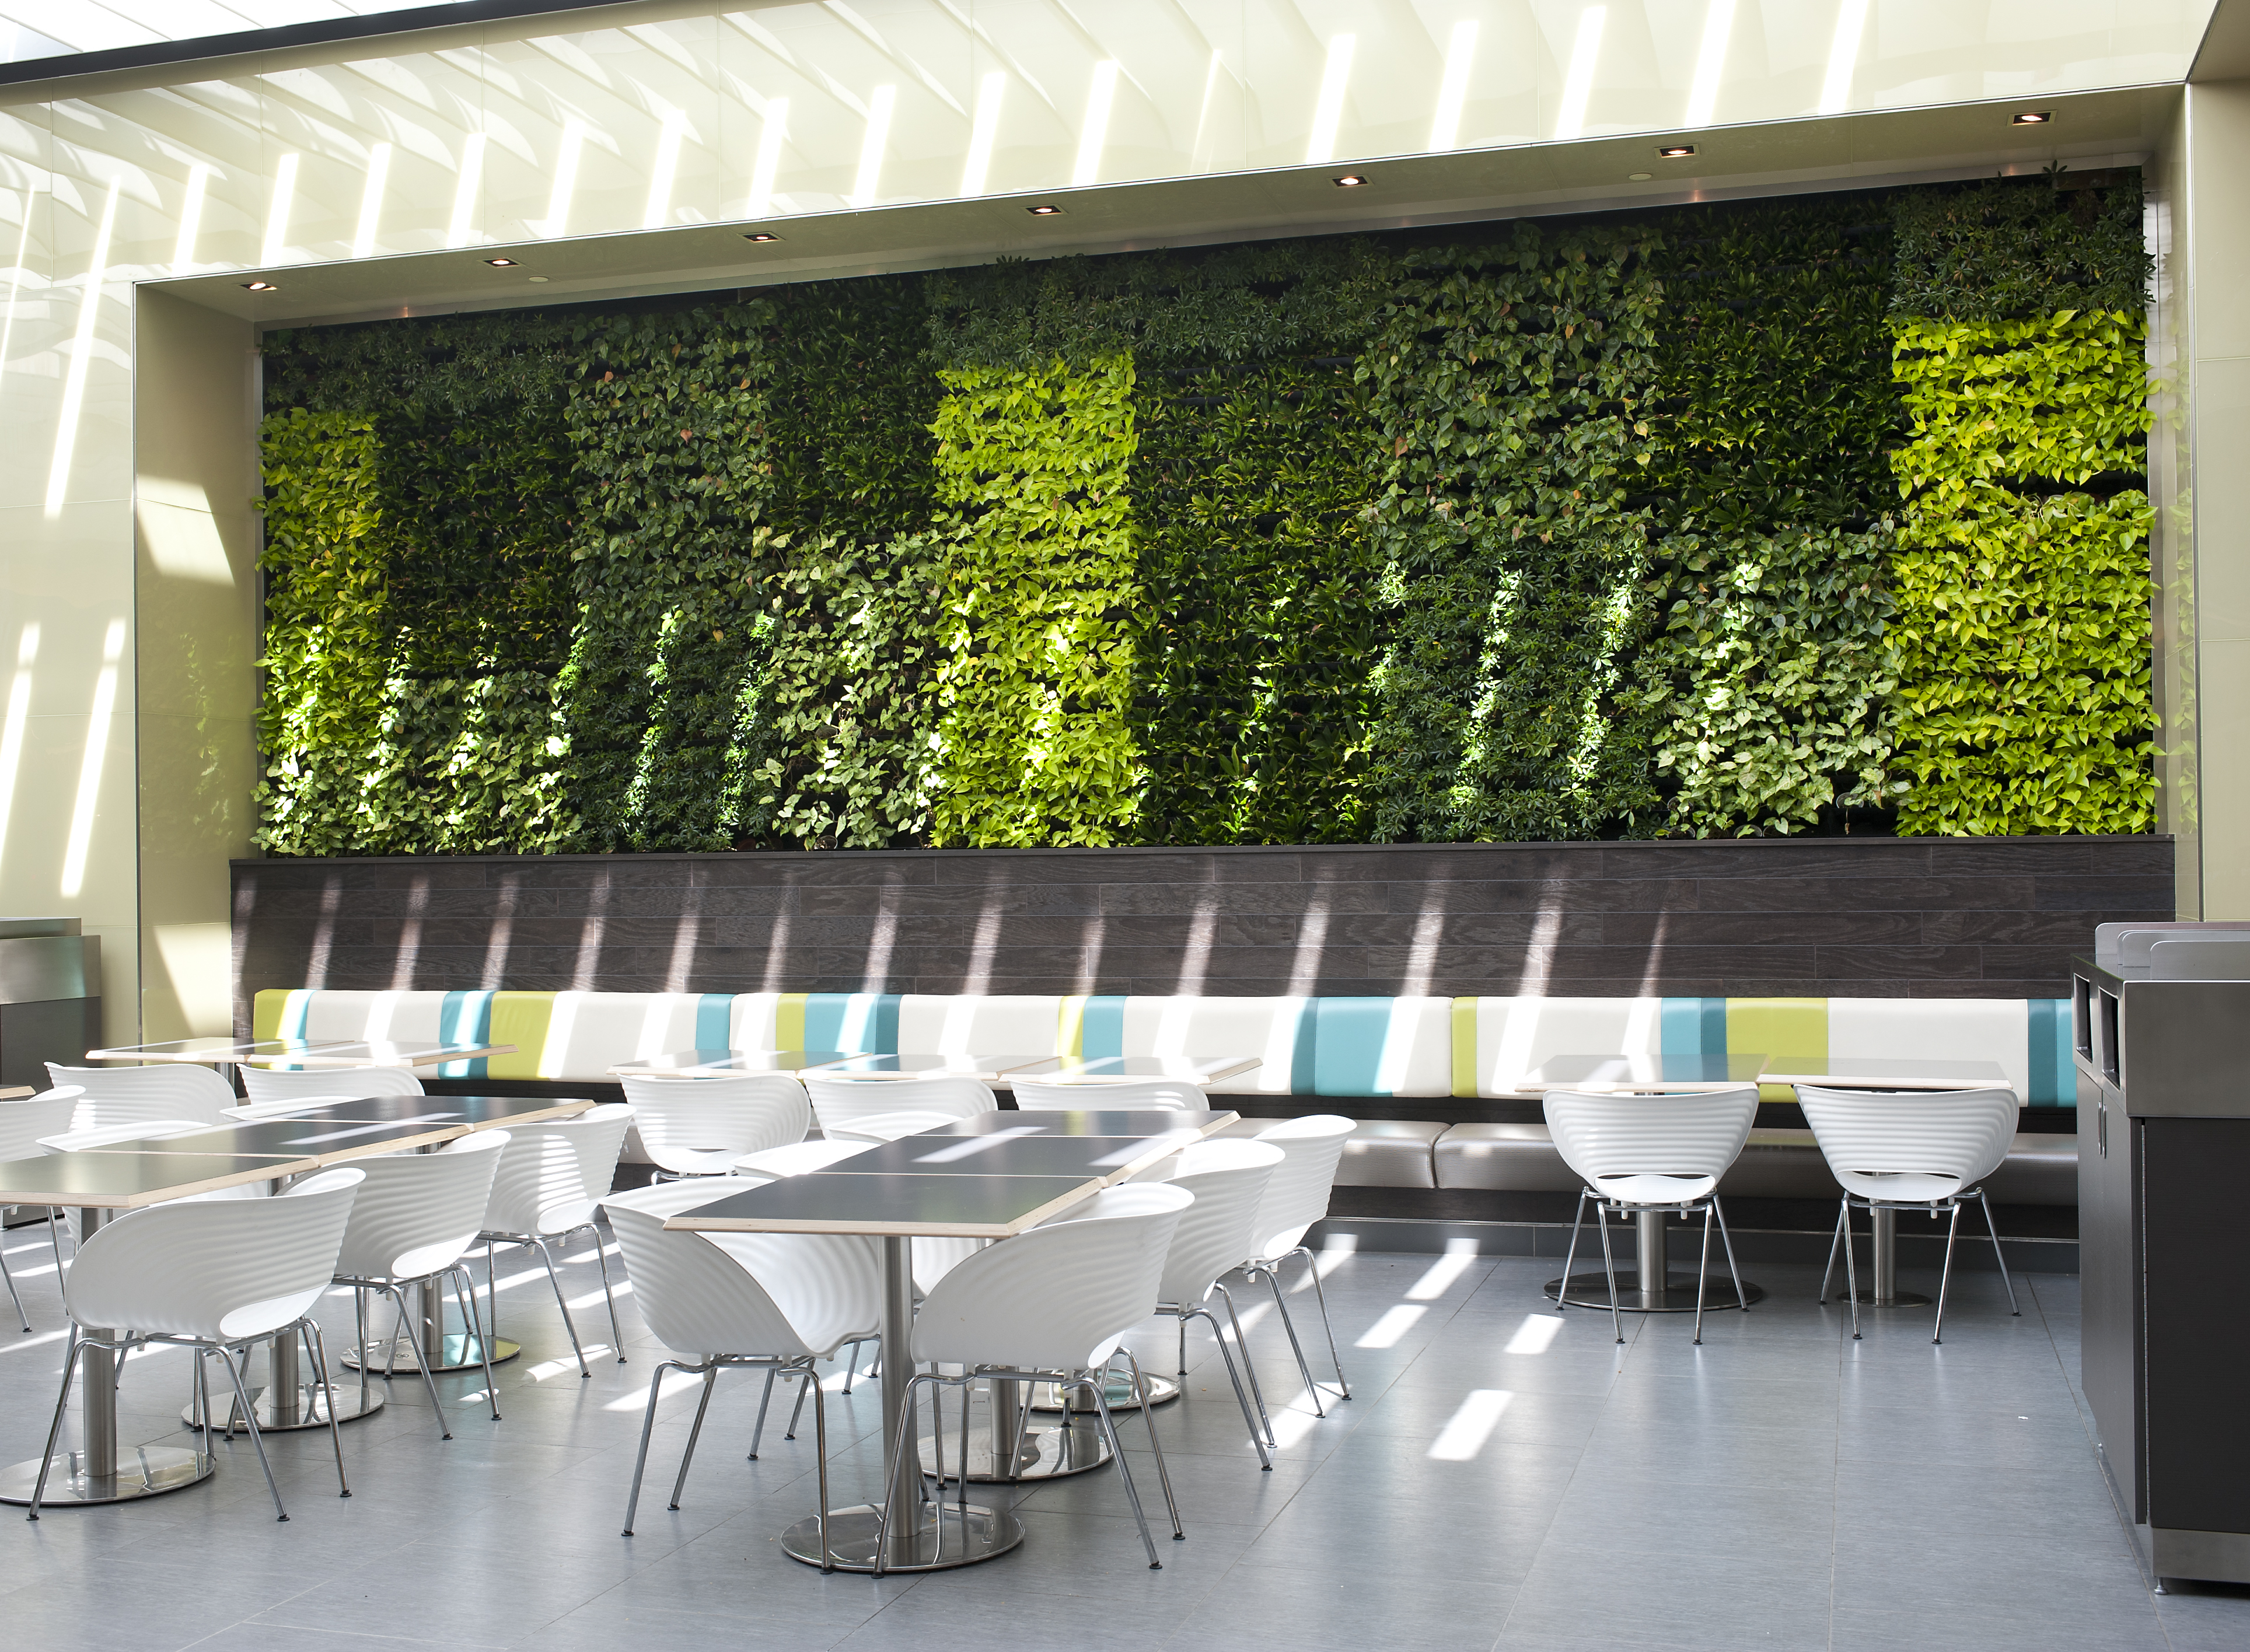 Living Green Wall in Patio Cafes_Phase 1 - Mitzi ... on Green Wall Patio id=50790